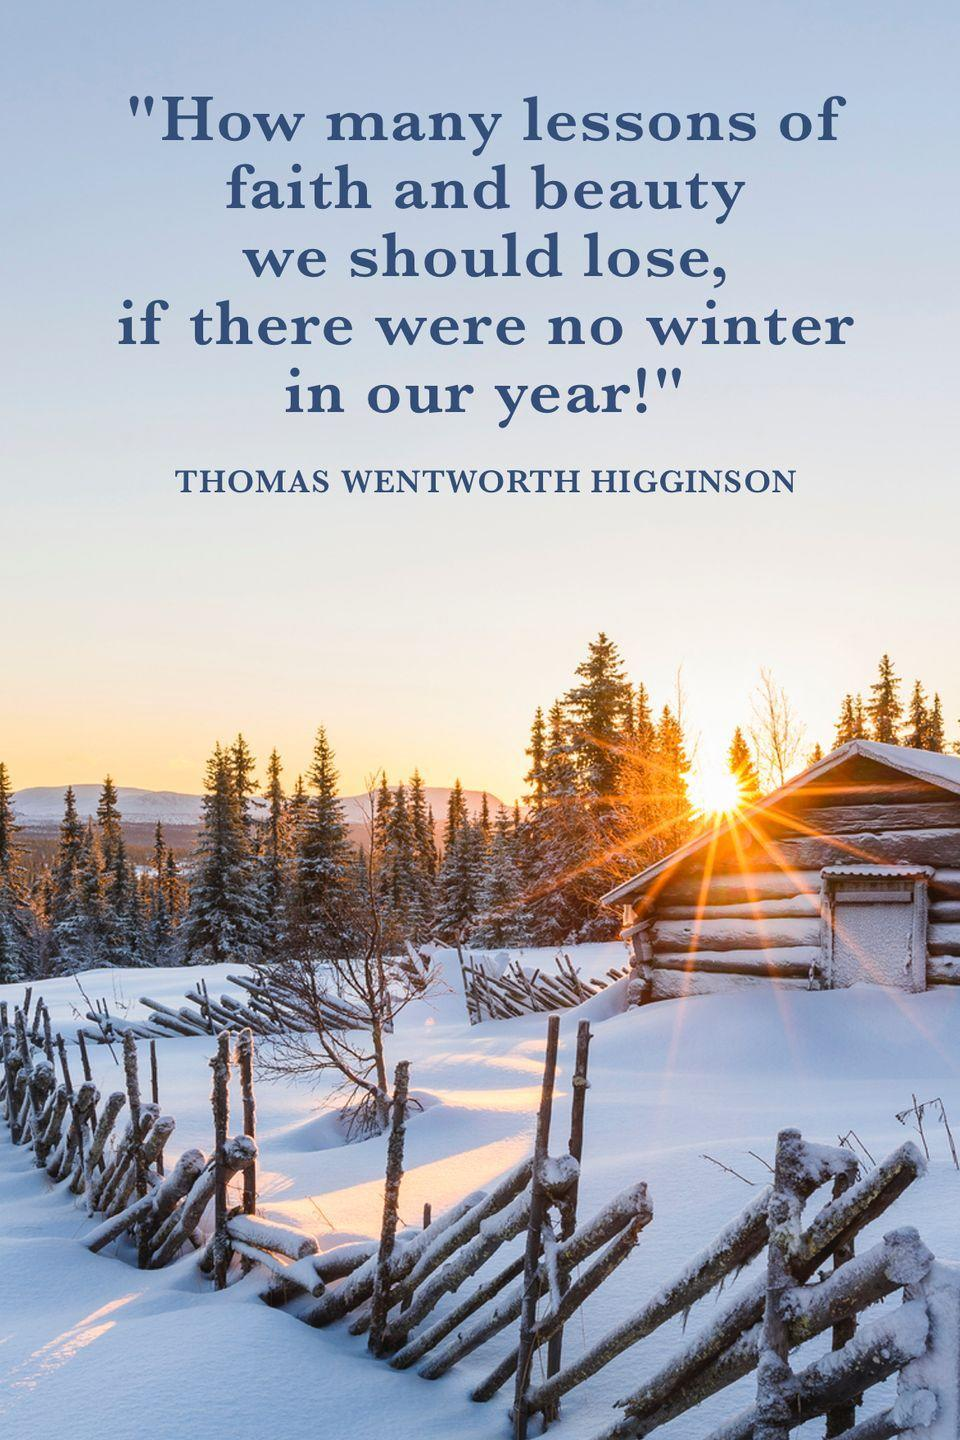 "<p>""How many lessons of faith and beauty we should lose, if there were no winter in our year!""</p>"